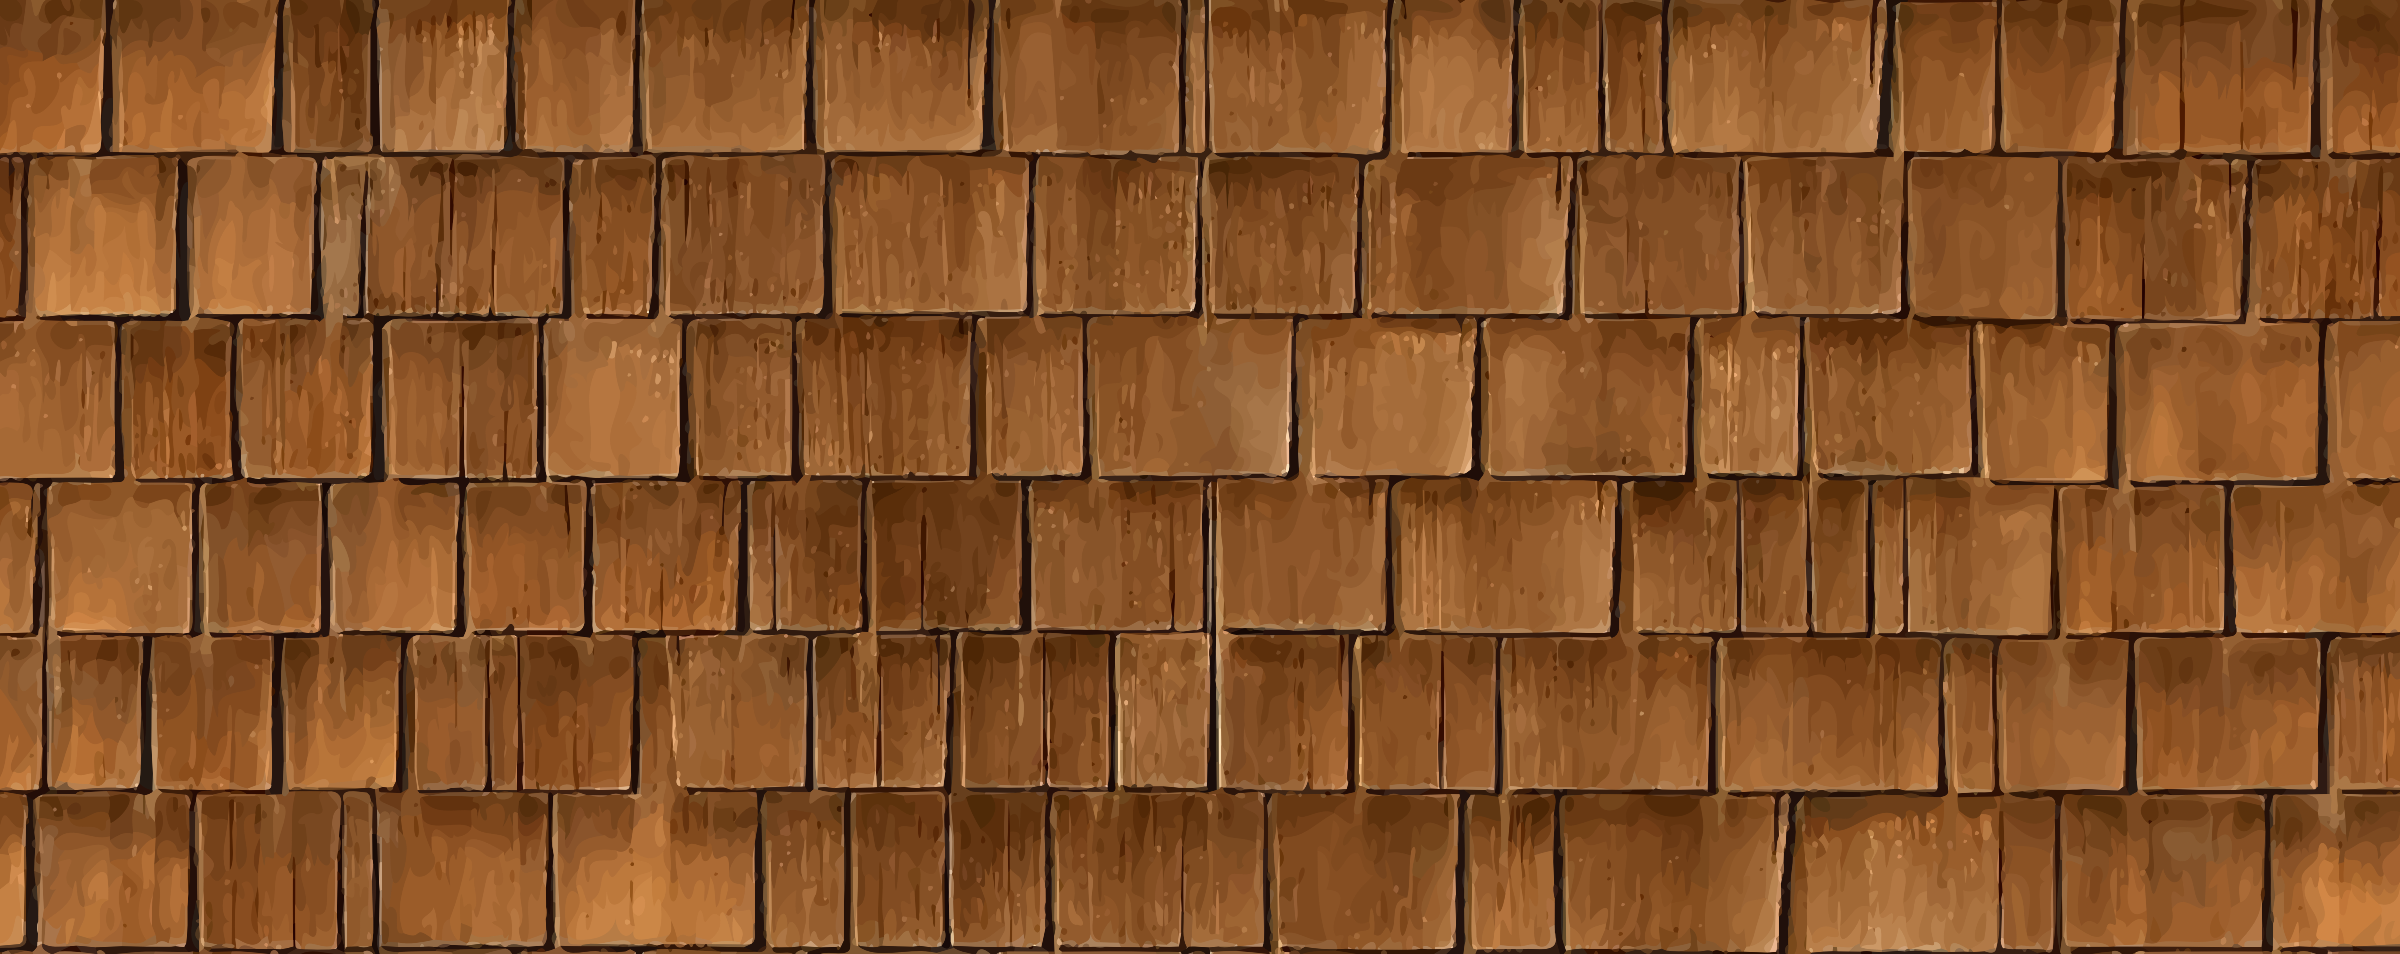 Wood Shingles Clipart 20 Free Cliparts Download Images